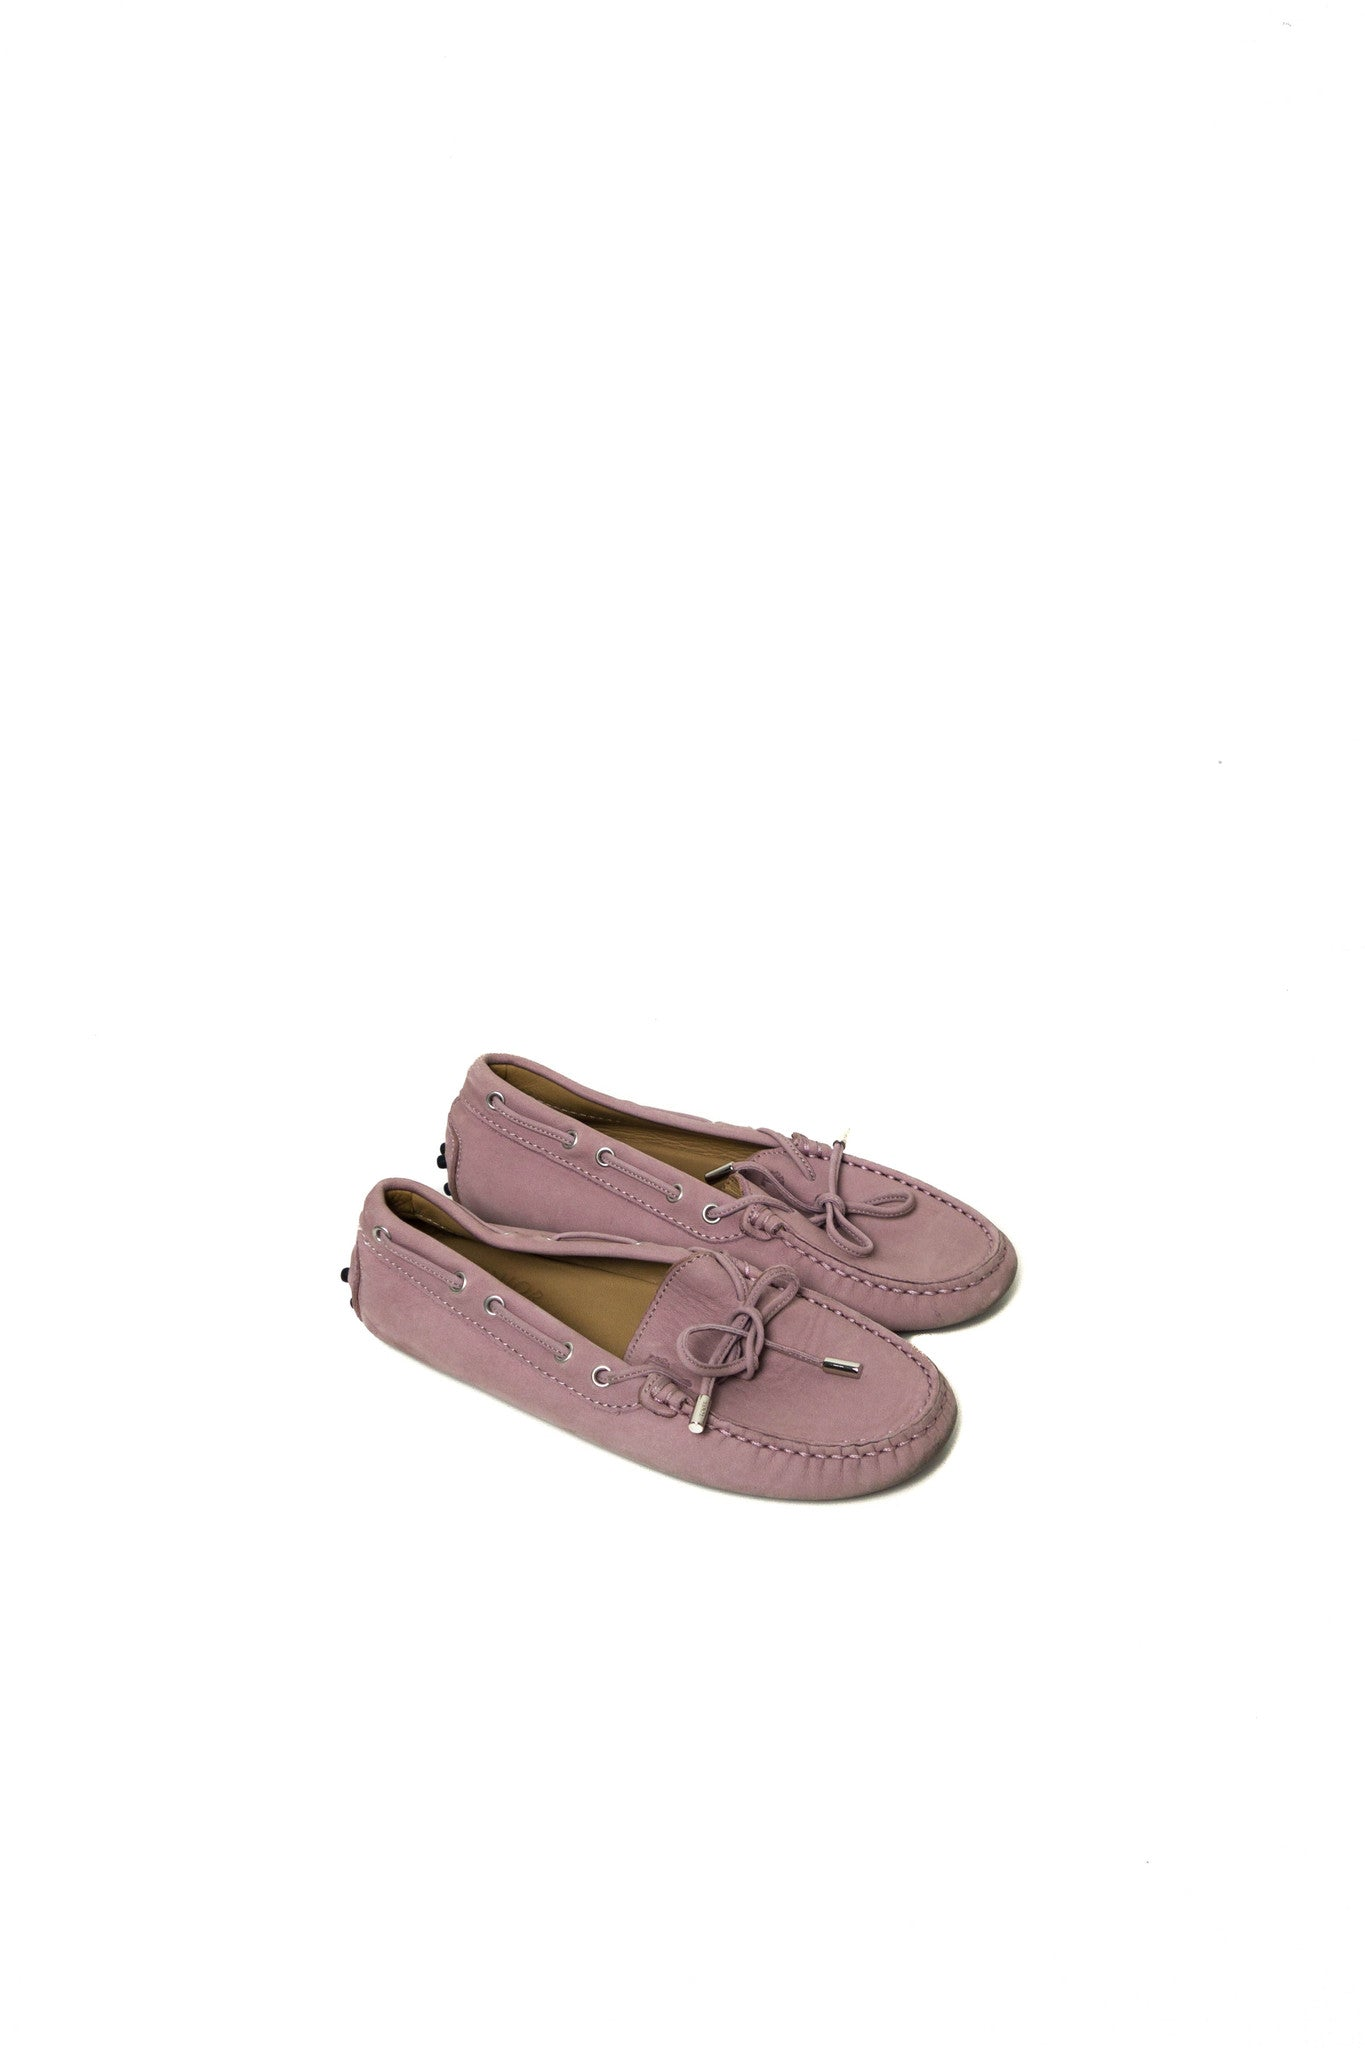 10002346 Tod's Kids~Shoes 7 (EU 32) at Retykle